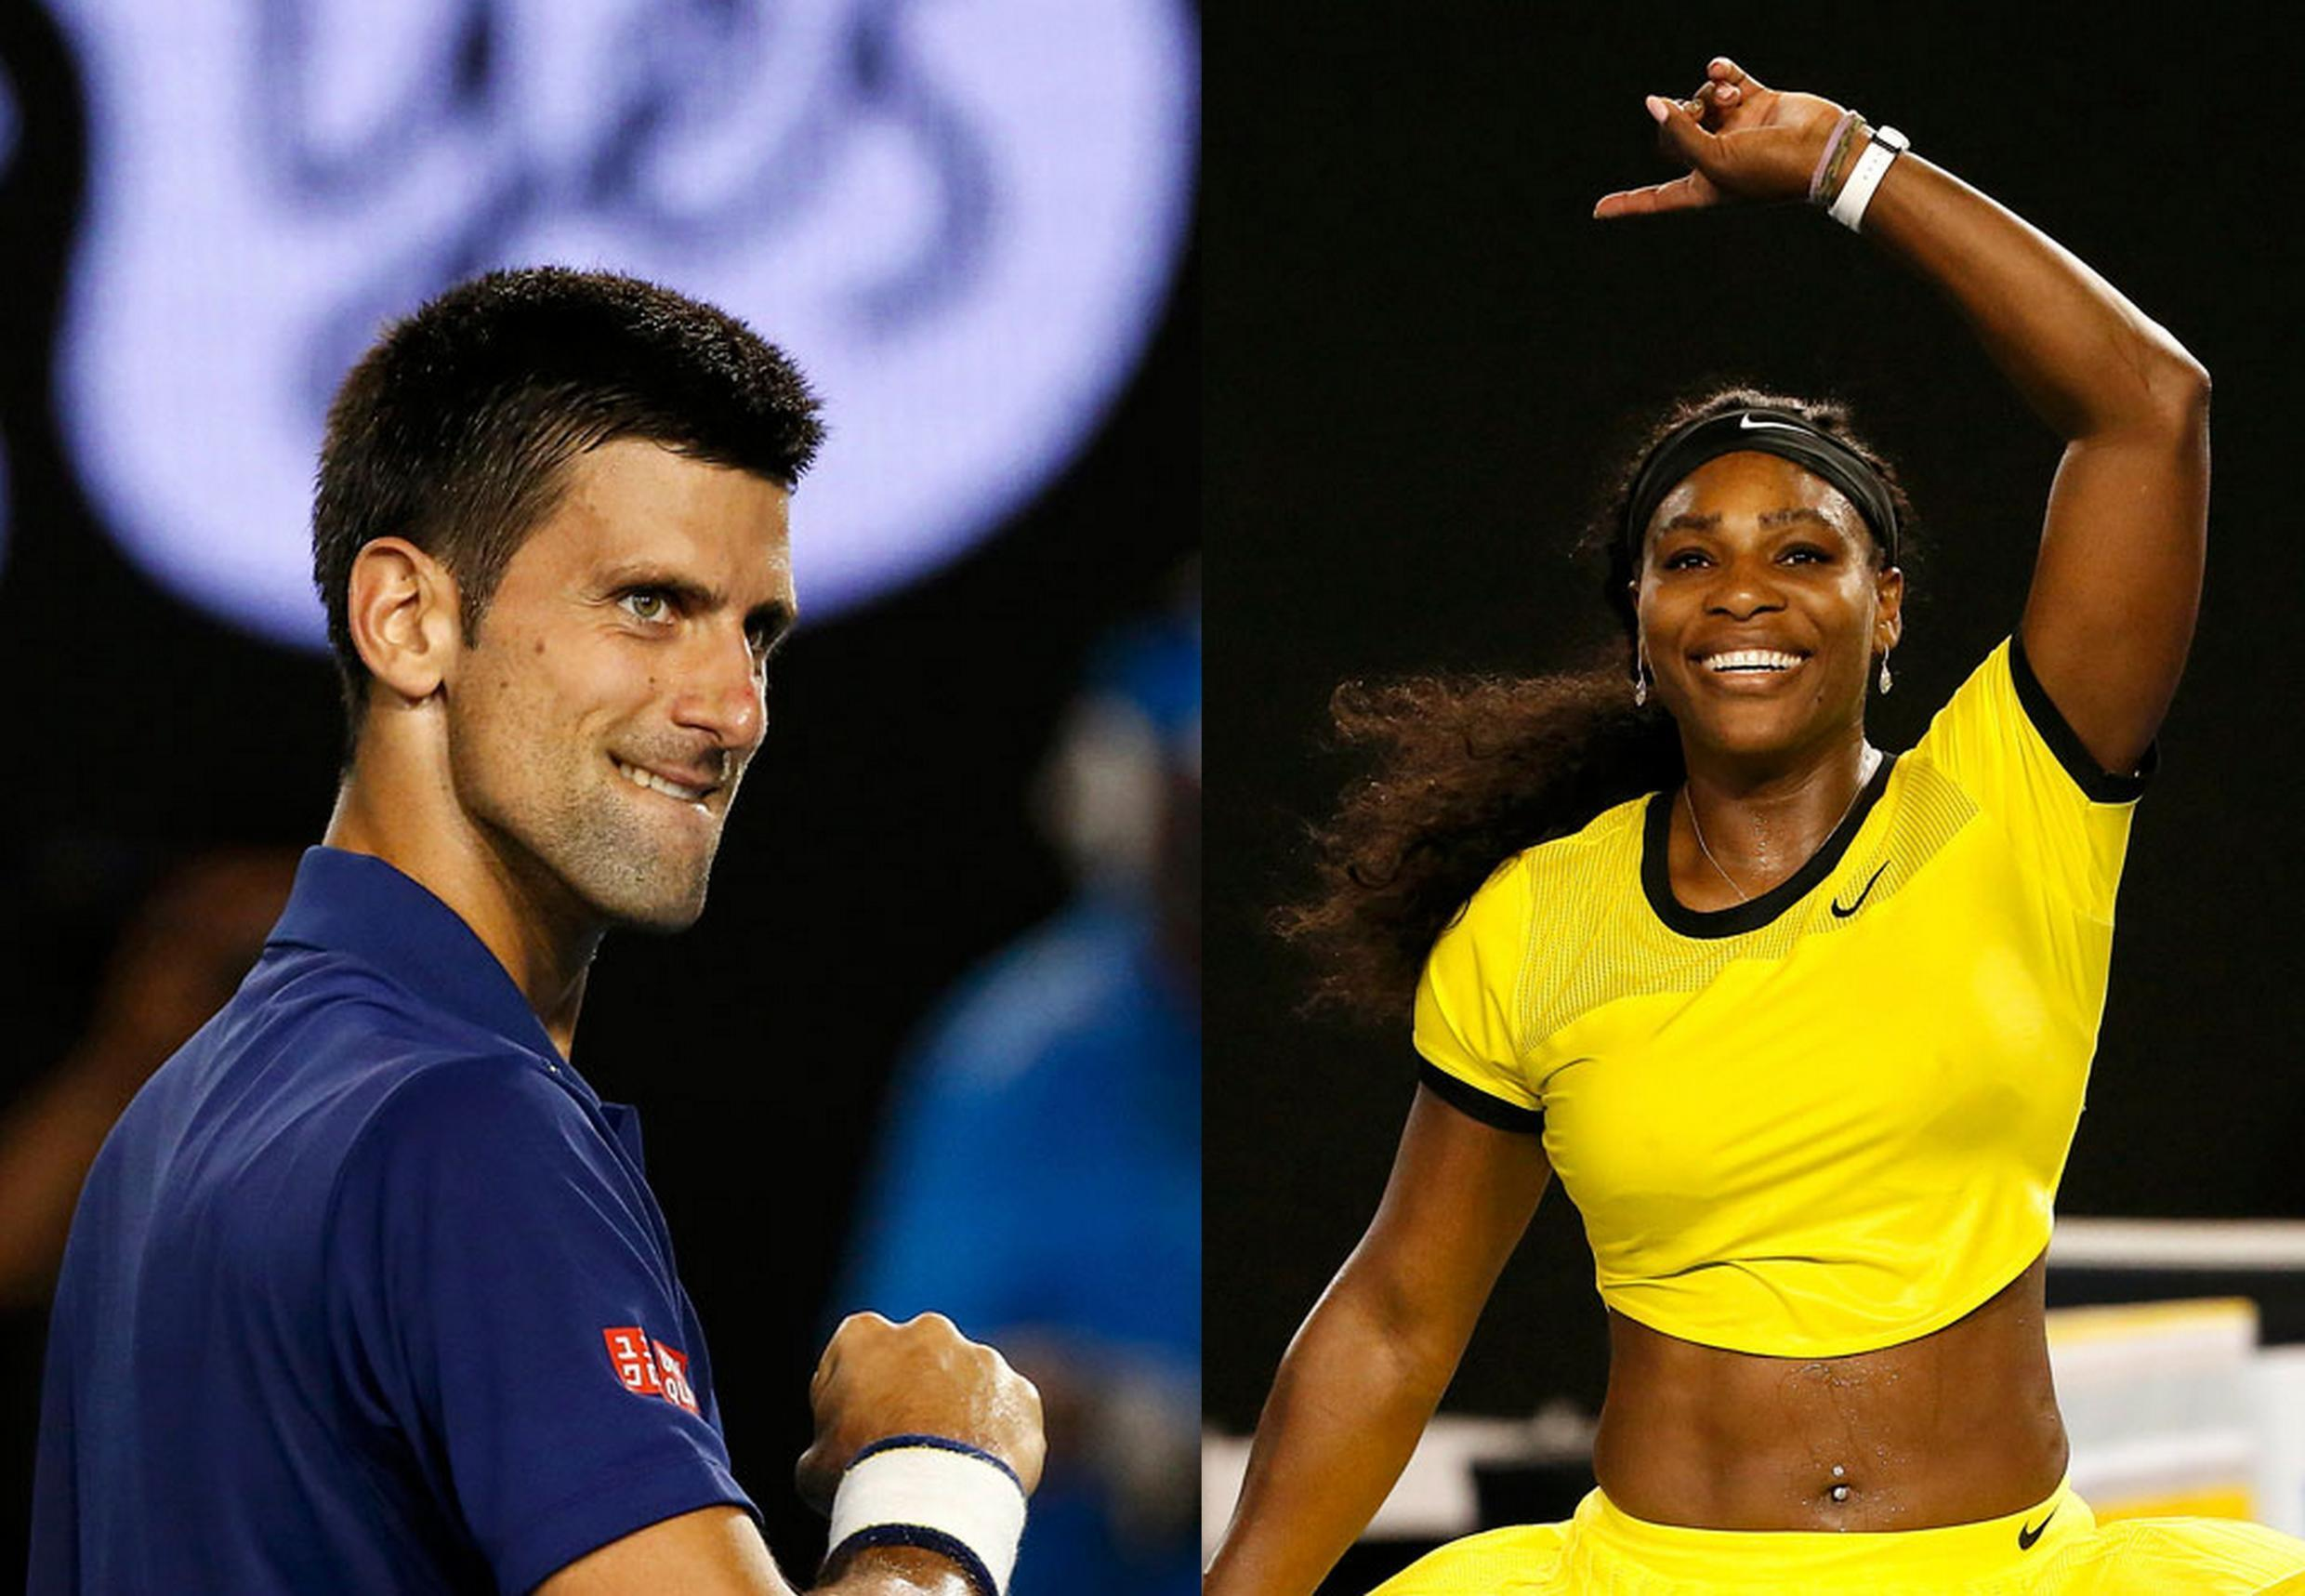 Novak Djokovic will play in the men's final at Indian Wells. Serena Williams will contest the women's final against Victoria Azarenka.